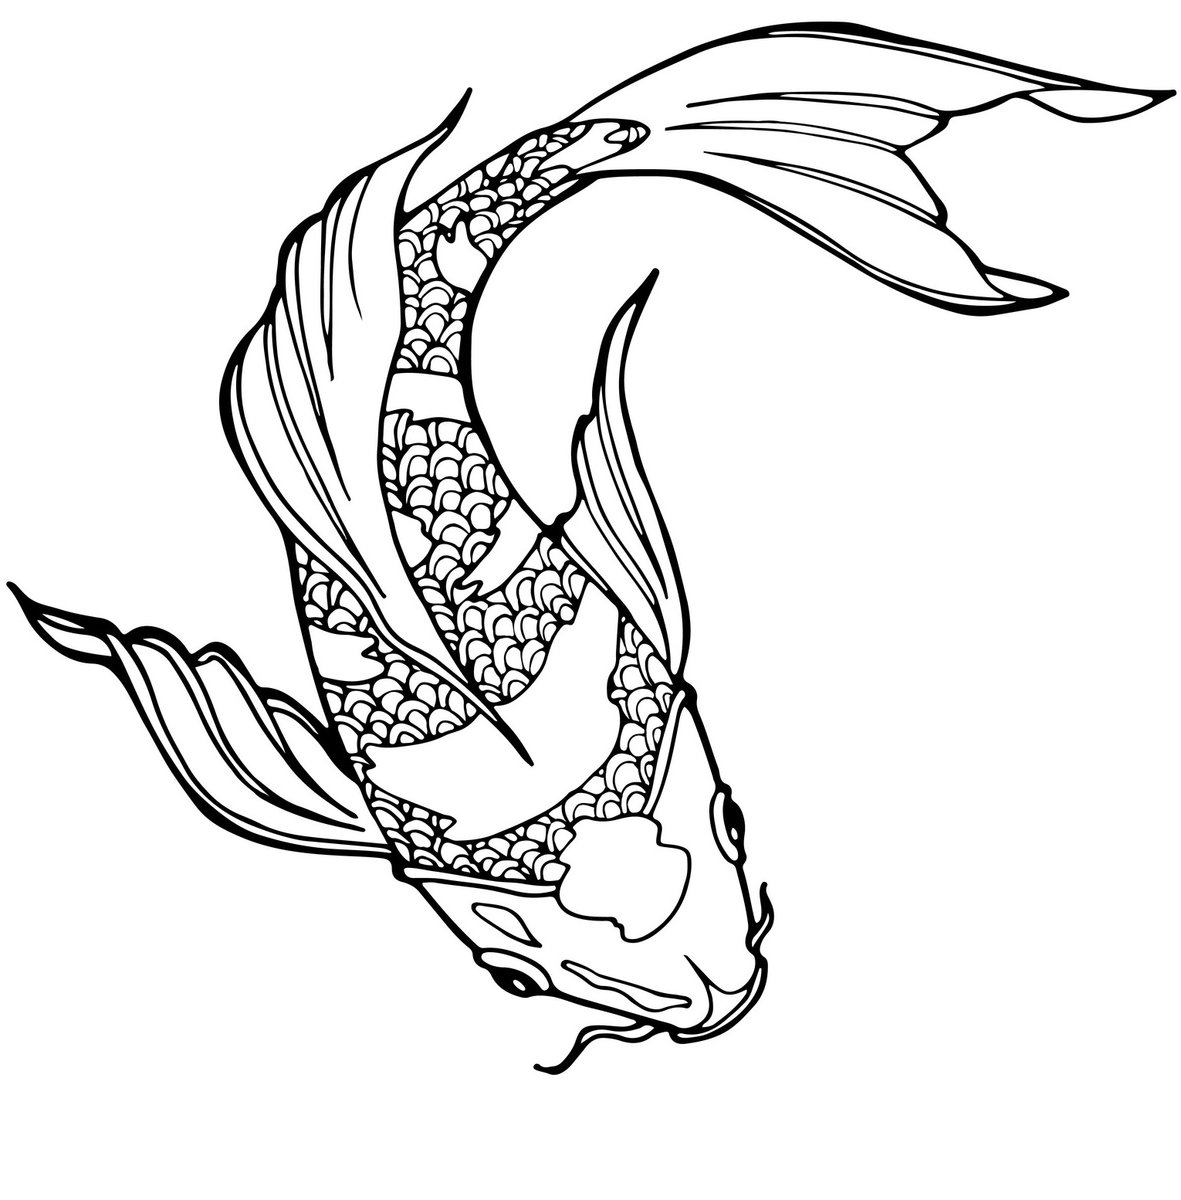 large fish coloring page free rainbow fish outline download free clip art free fish coloring large page